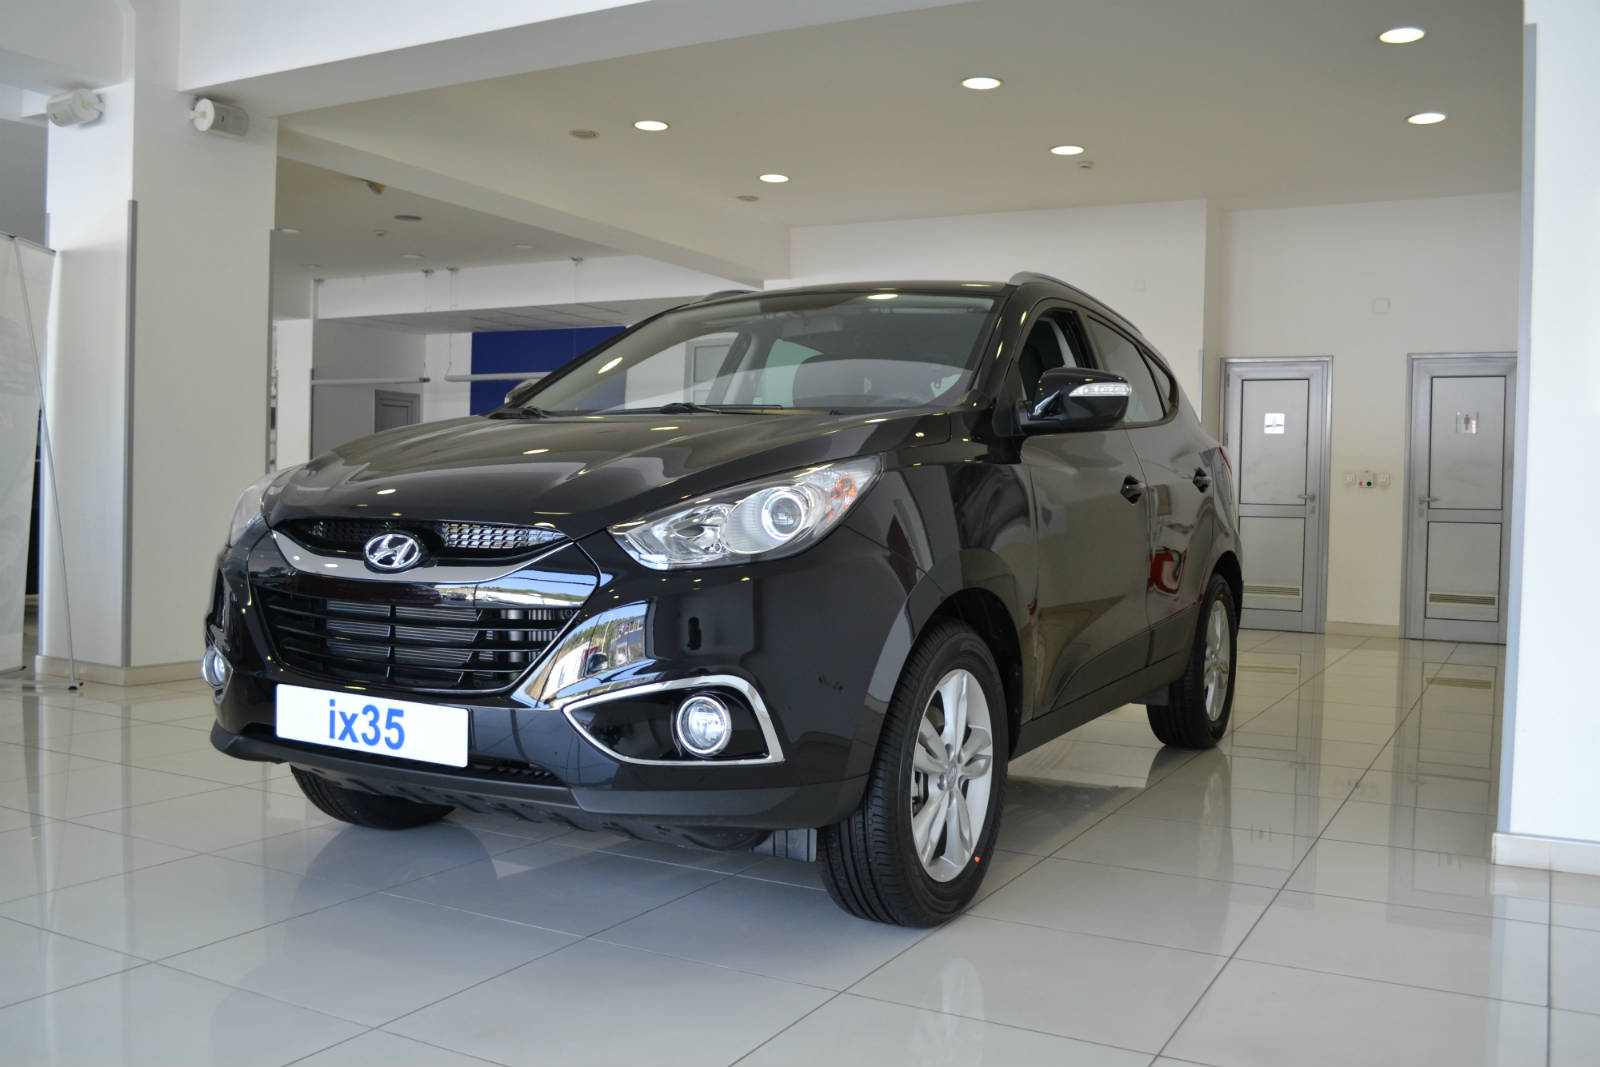 The Hyundai Tucson Known As Ix35 On Some Markets It S A New Breathtaking Vehicle Is 10 Cm Larger Than Nissan Qashqai Roque And Ford Escape